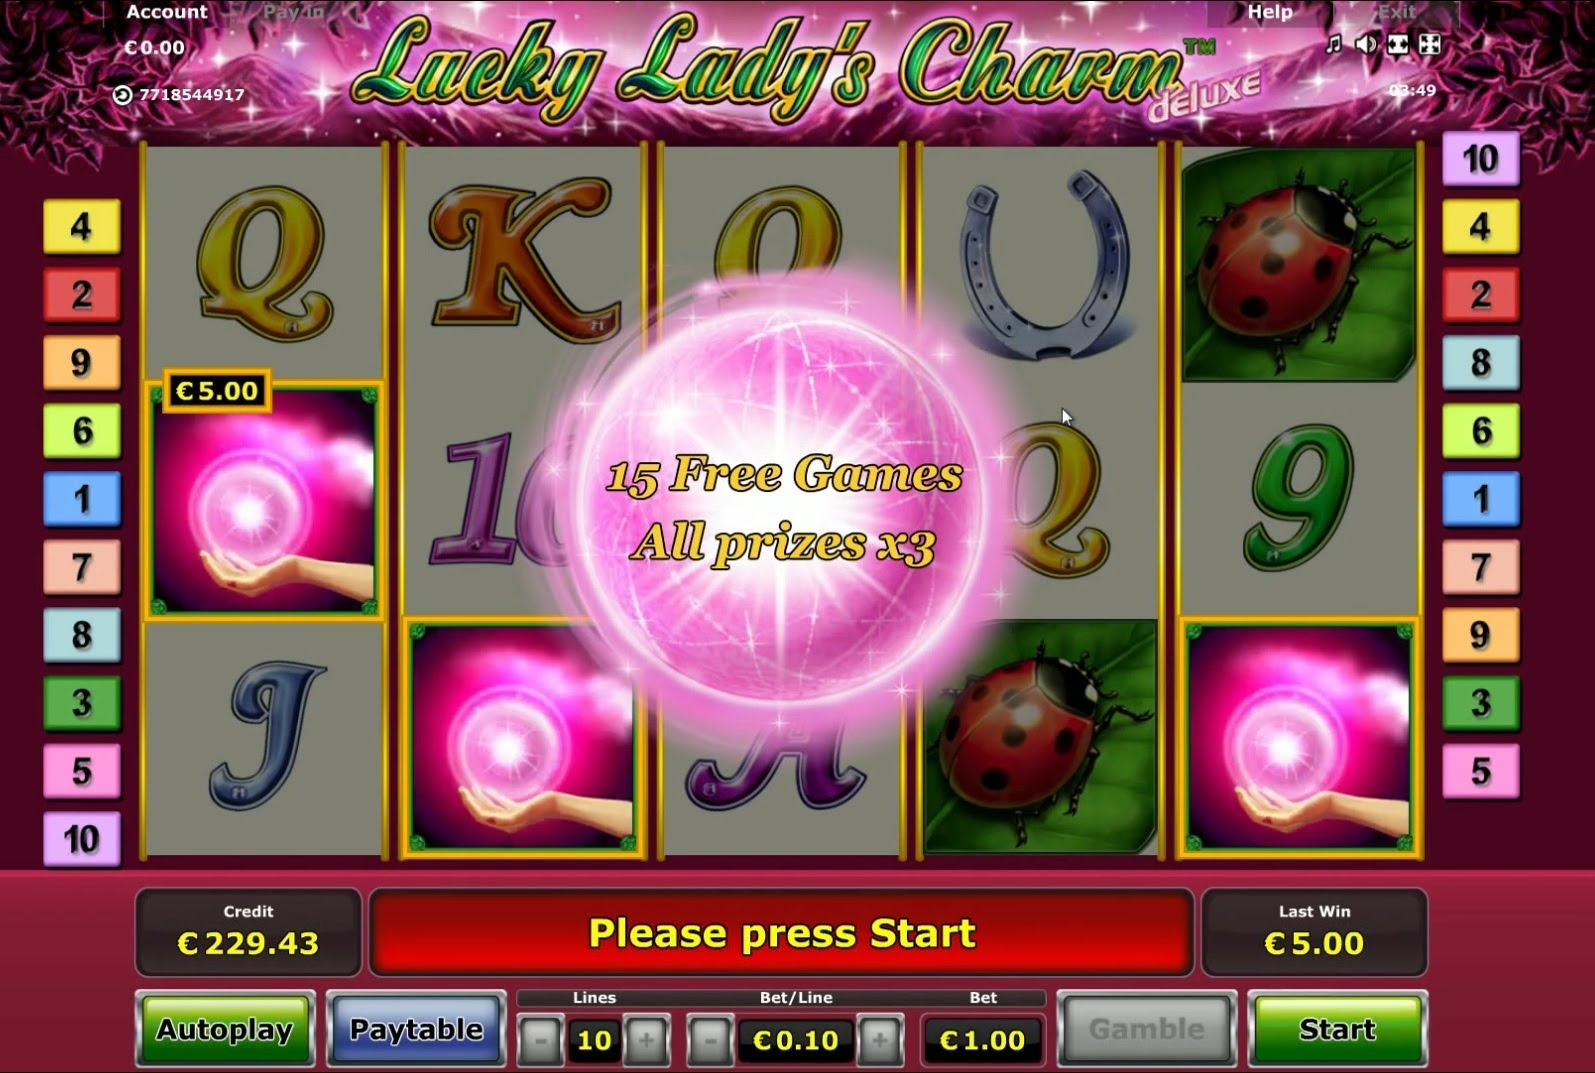 slot machine lucky lady charm deluxe